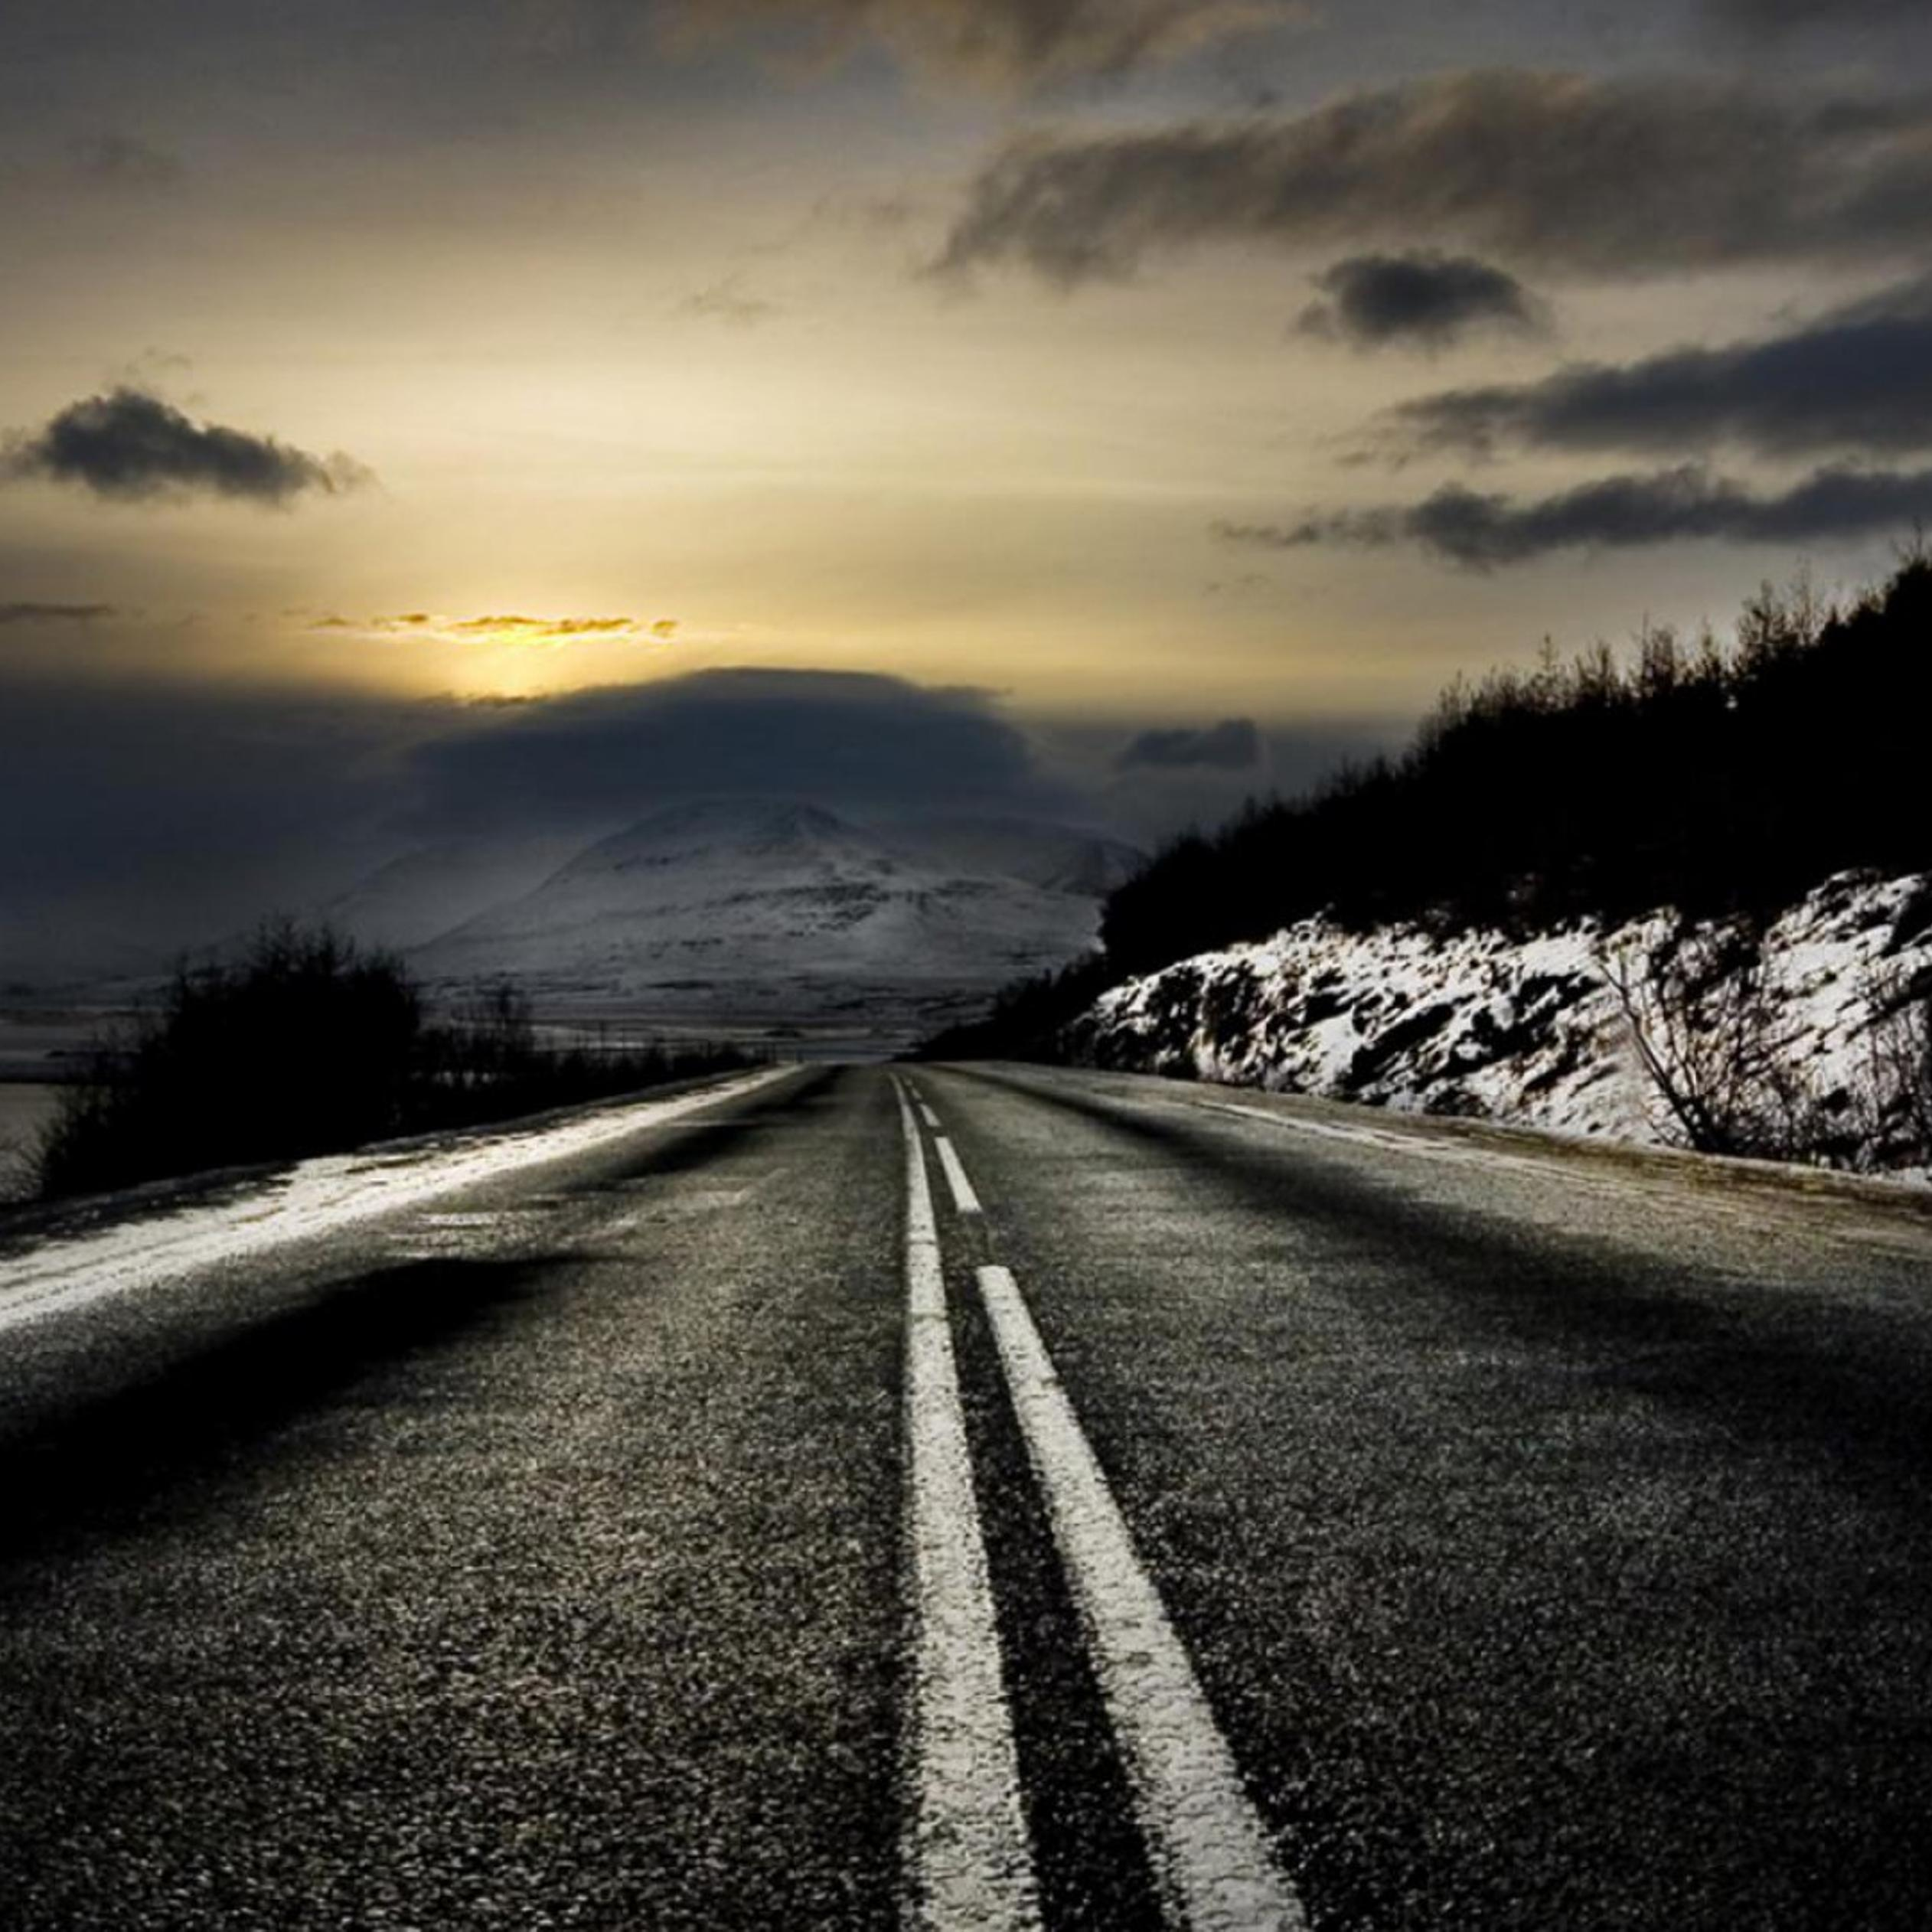 Black Night And Dark Road In Winter Season Wallpaper Download 2524x2524